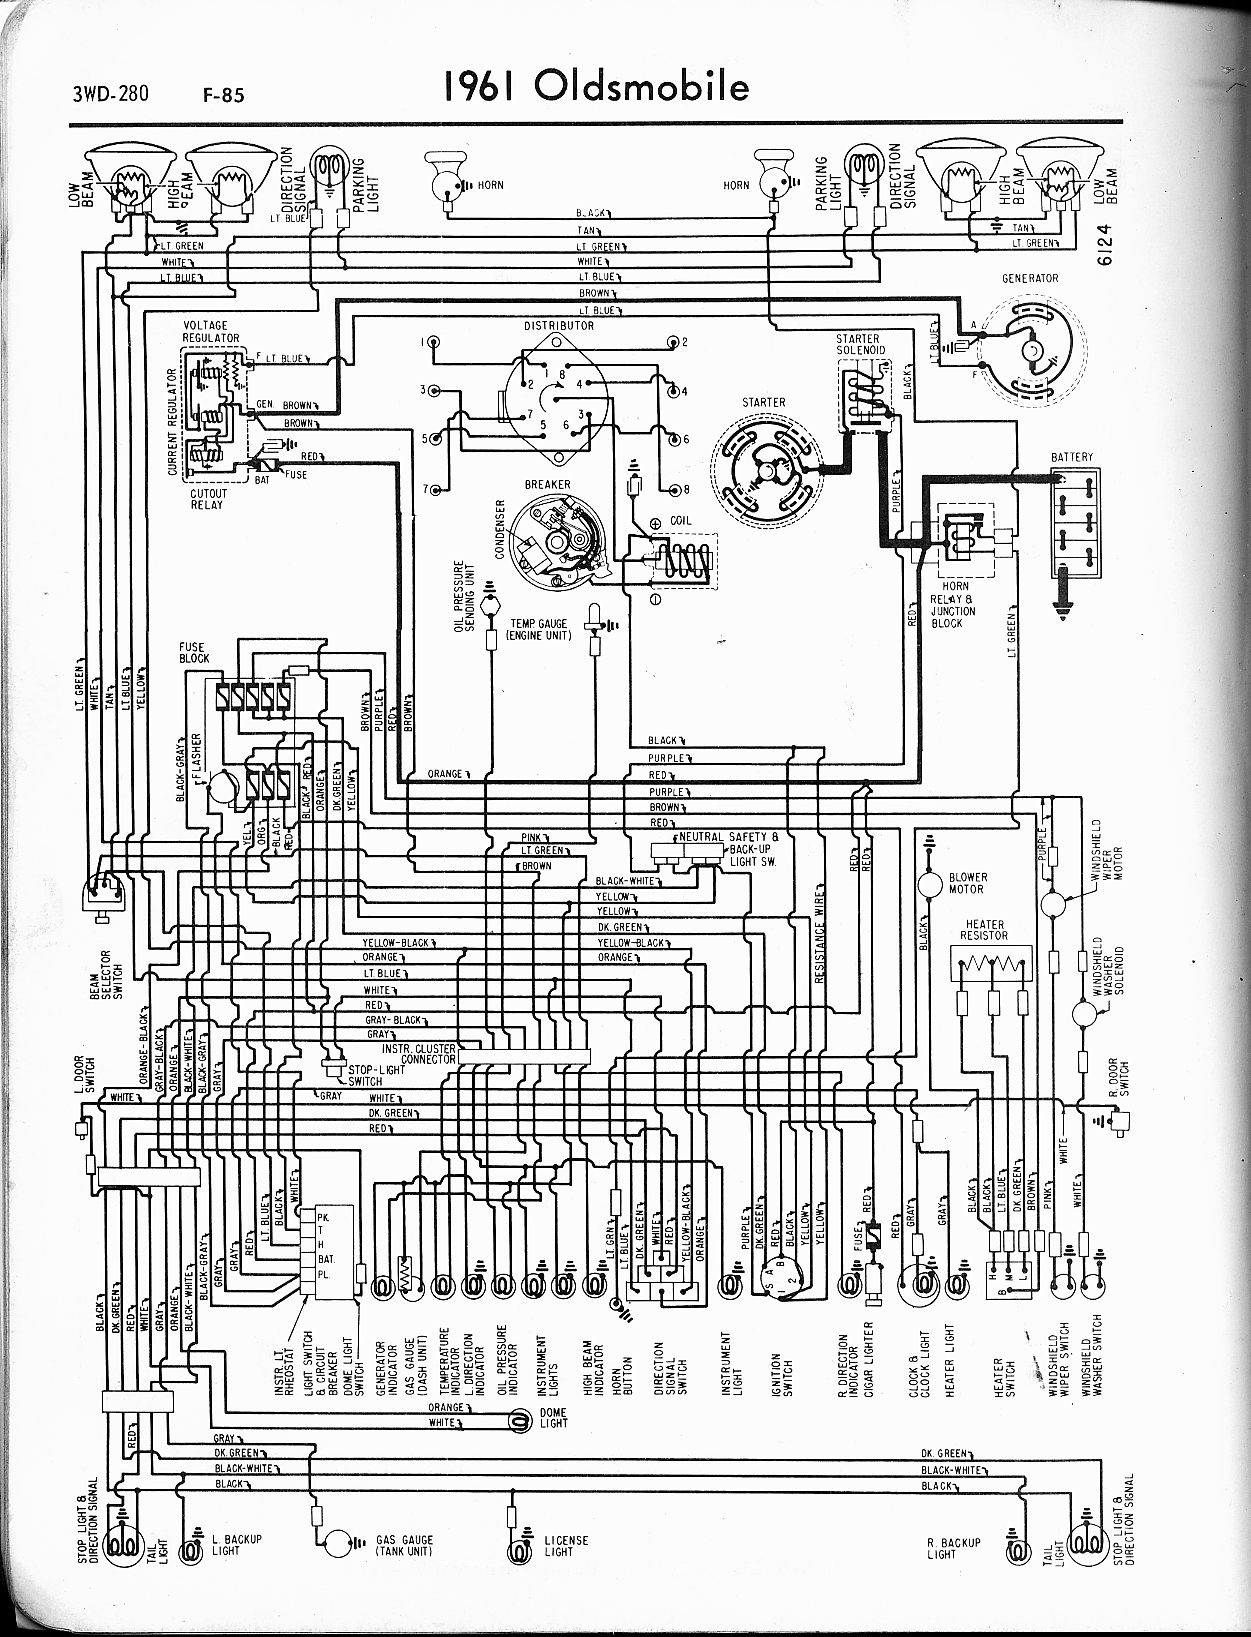 MWire5765 280 oldsmobile wiring diagram oldsmobile wiring diagrams instruction Basic Turn Signal Wiring Diagram at n-0.co